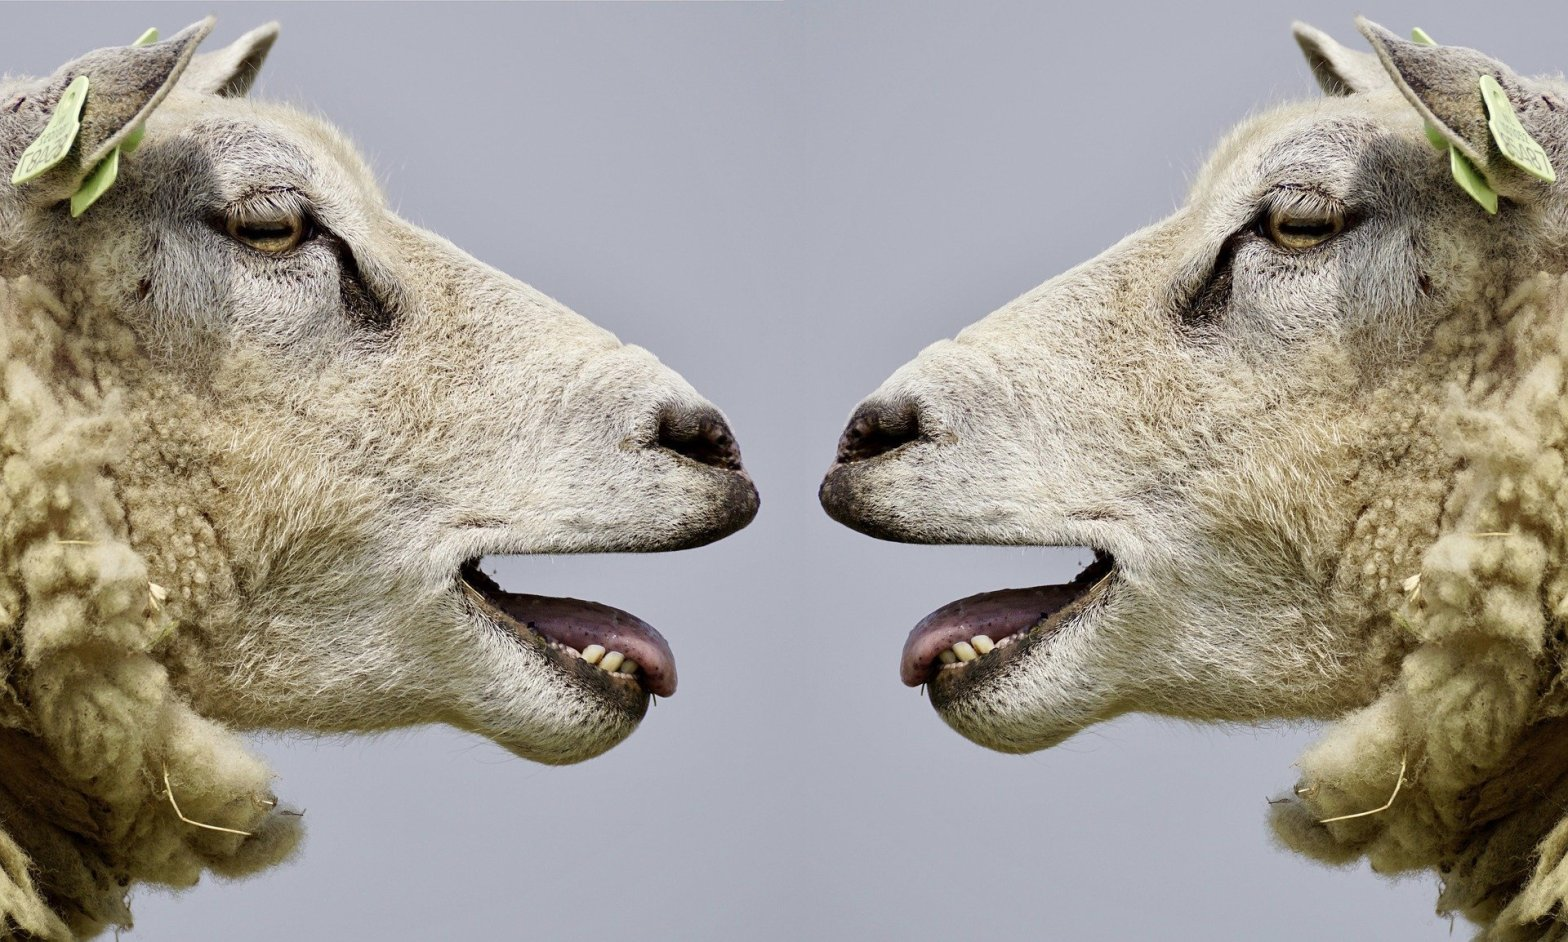 sheep facing each other with mouths open